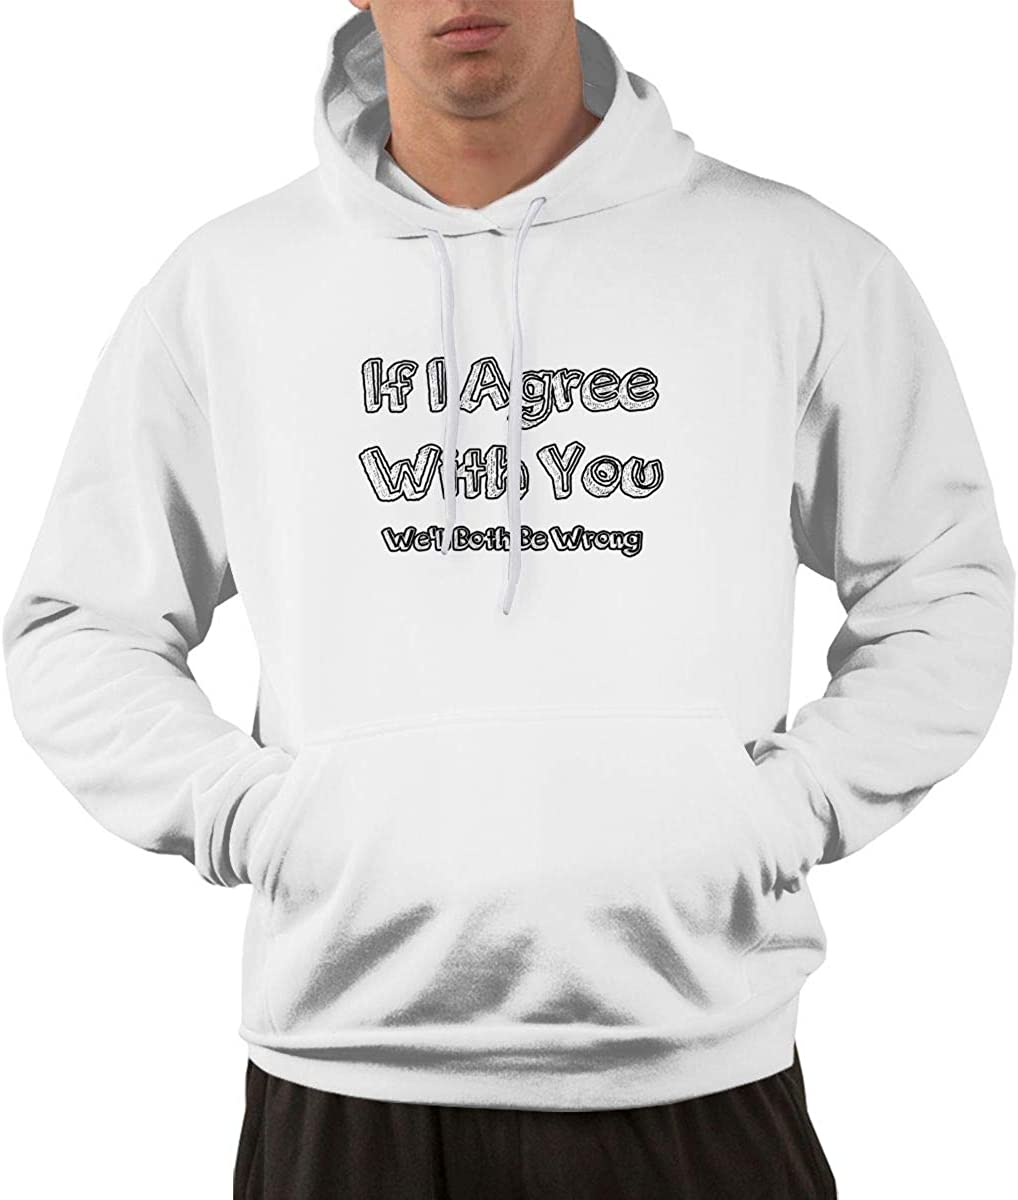 Well Both Be Wrong Hoodies Sweatshirt for Men Pullover Classic with Pockets L White If I Agree with You